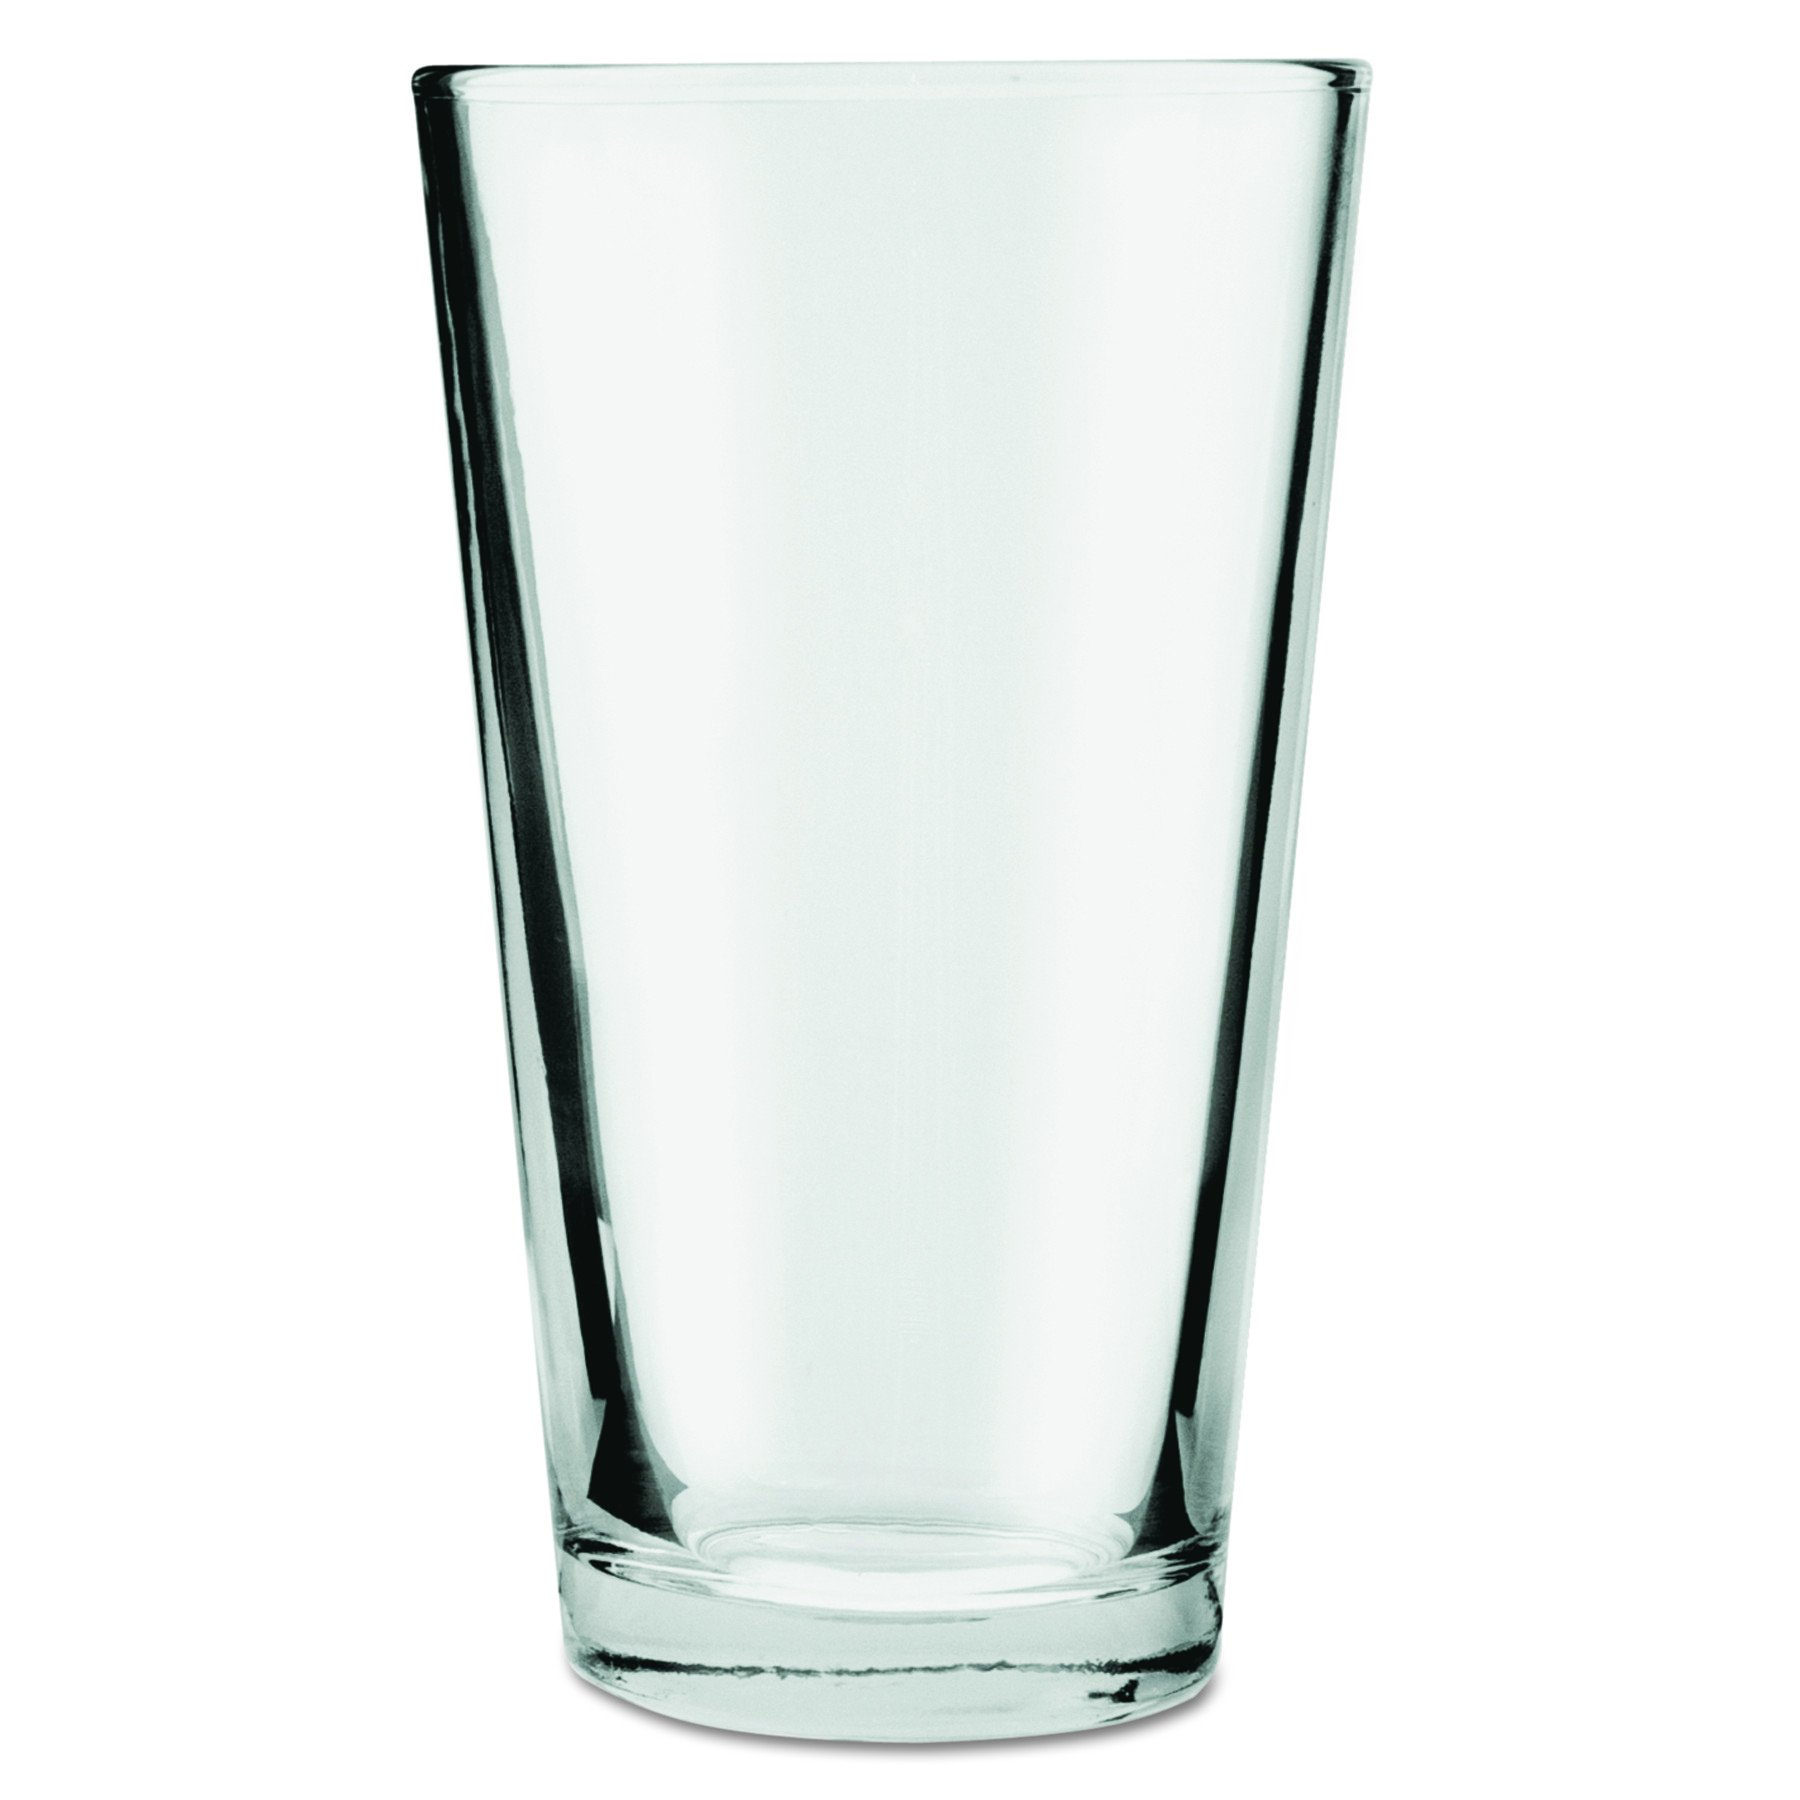 Anchor 176FU Mixing Glasses, 16oz, Clear (Case of 24)